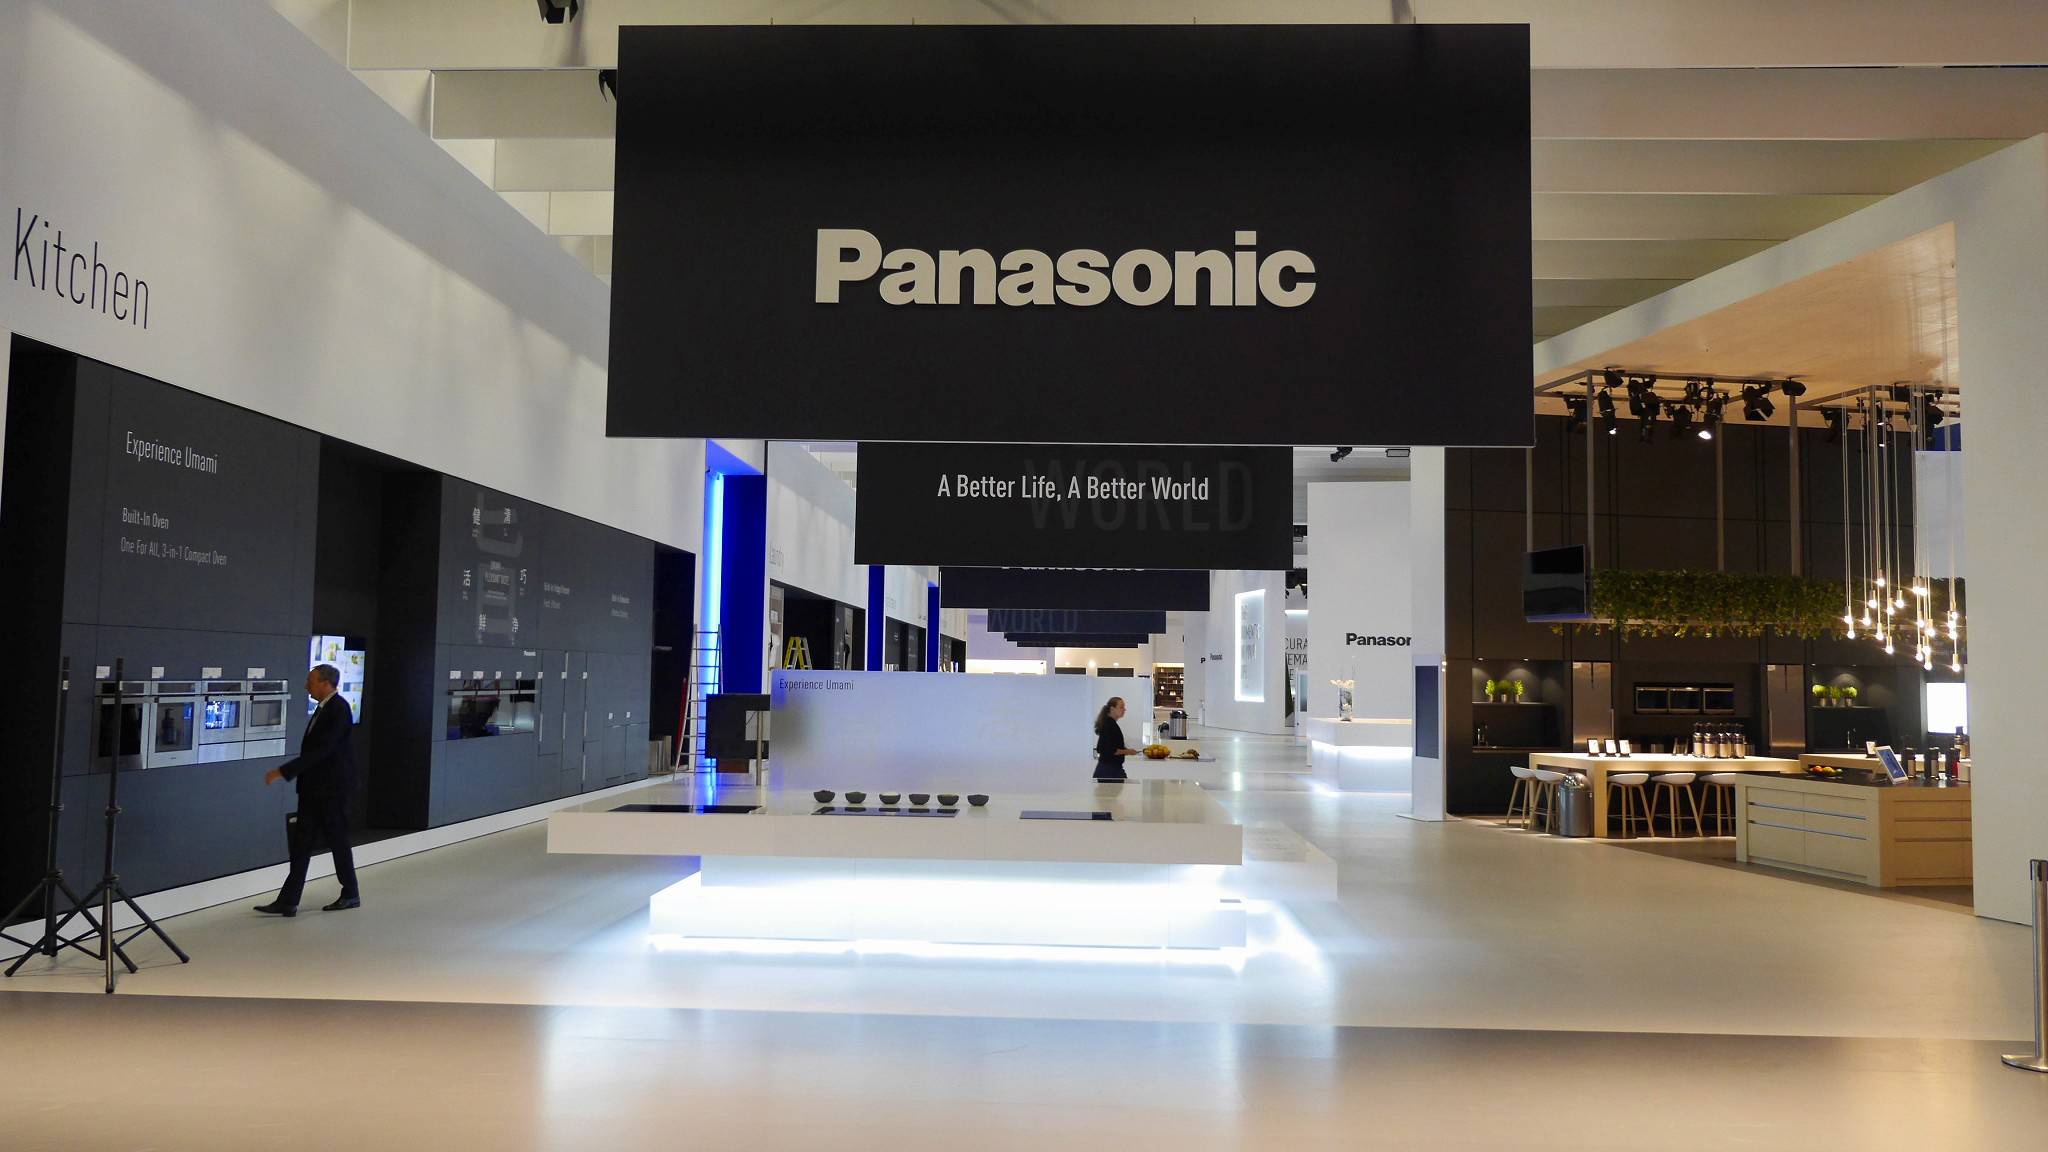 panasonic to present 39 a better life a better world 39 at ifa 2015 business wire. Black Bedroom Furniture Sets. Home Design Ideas